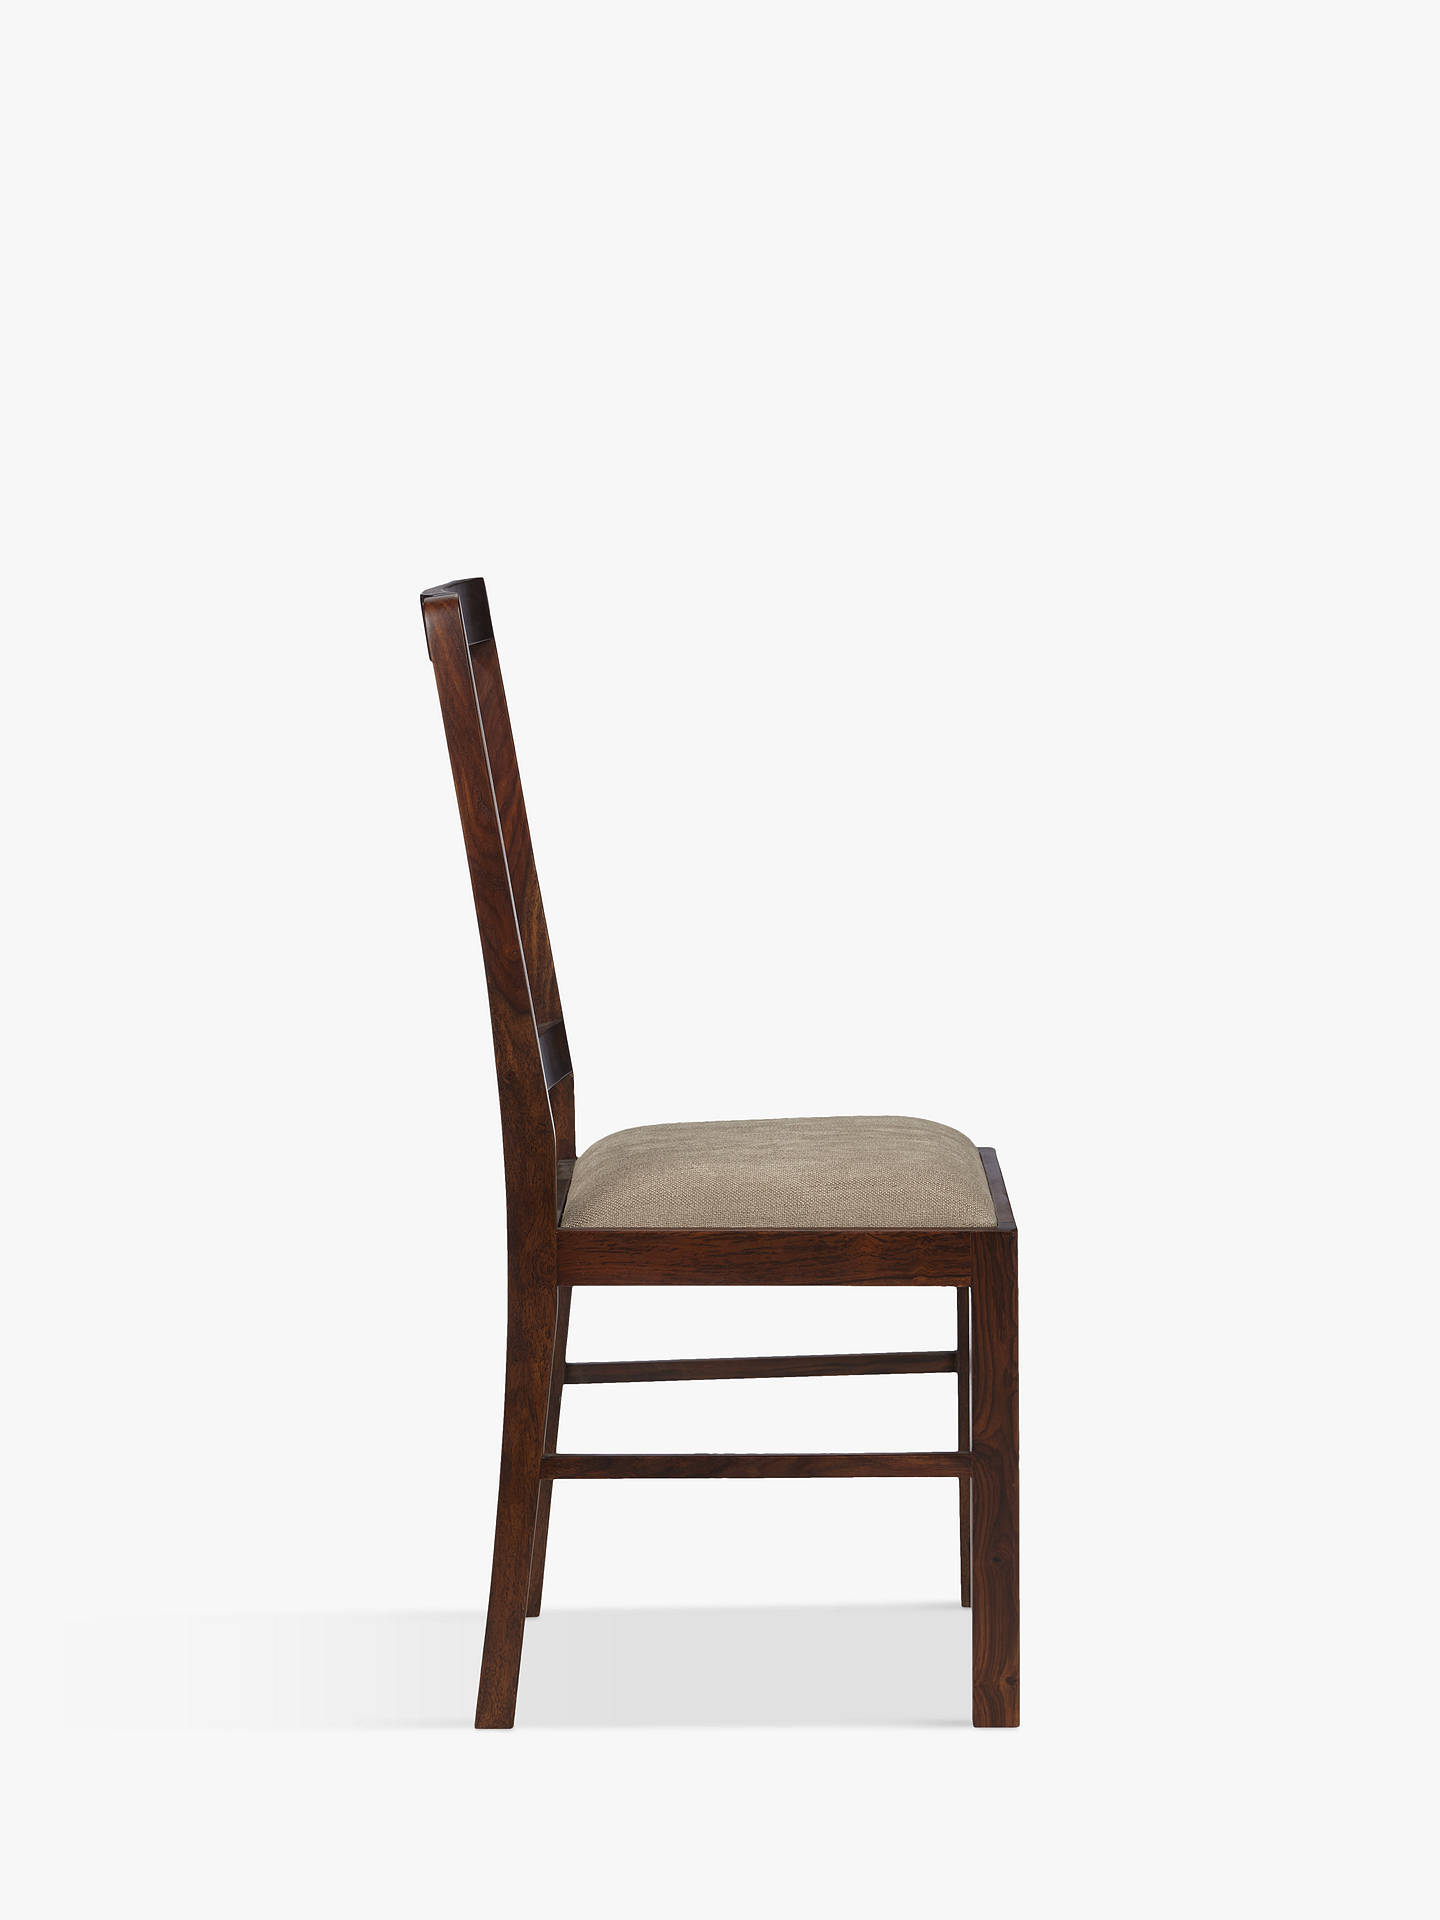 BuyJohn Lewis & Partners Maharani Upholstered Dining Chair Online at johnlewis.com